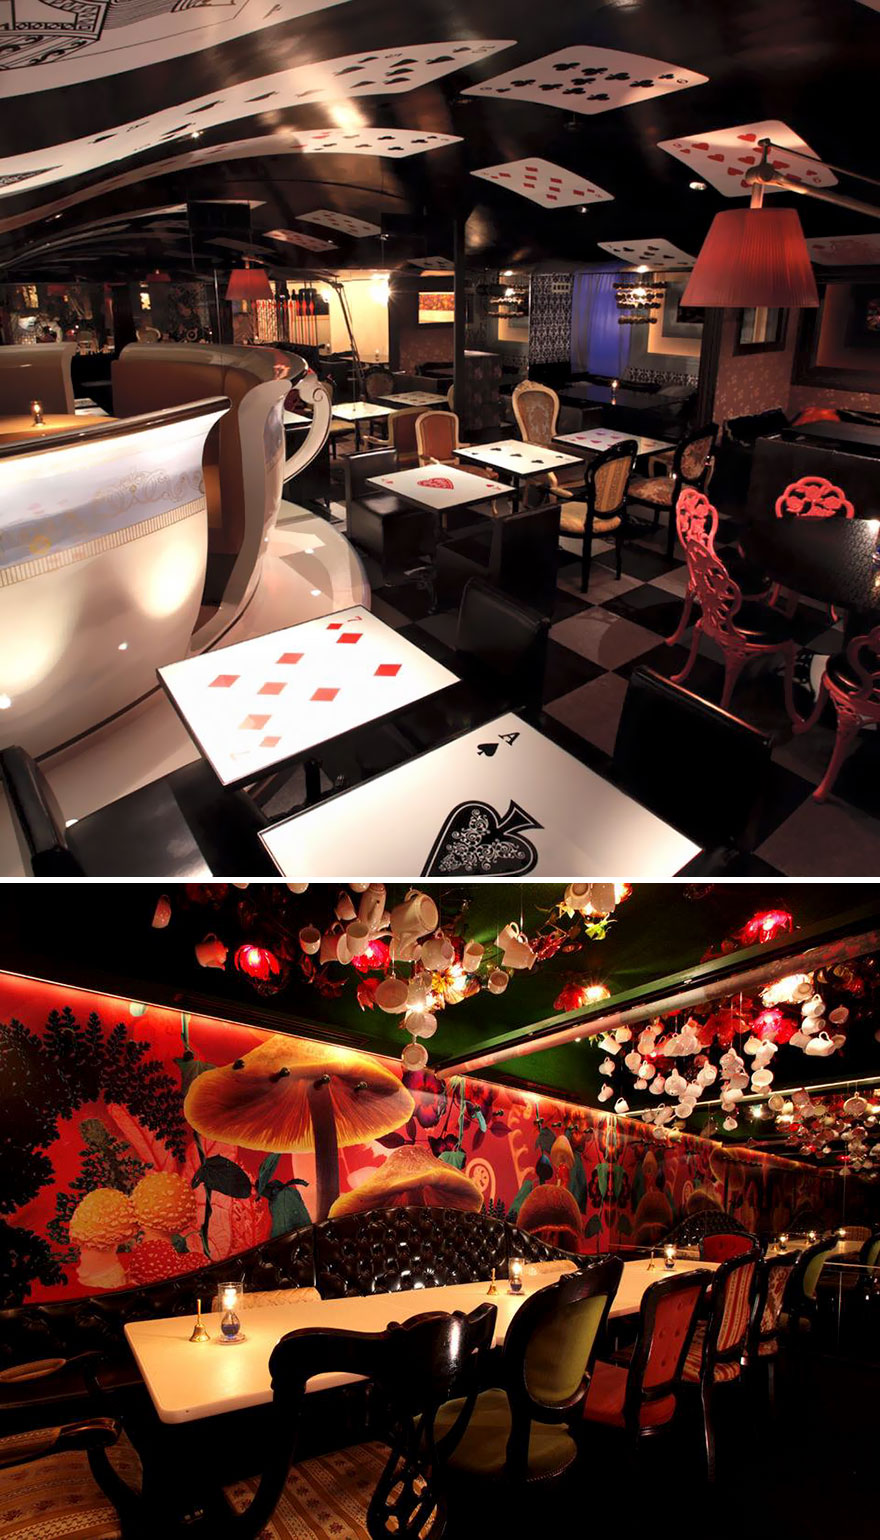 35 Of The World's Most Amazing Restaurants To Eat In Before You Die - Dine In A Magical Alice World, Alice In A Labyrinth, Tokyo, Japan